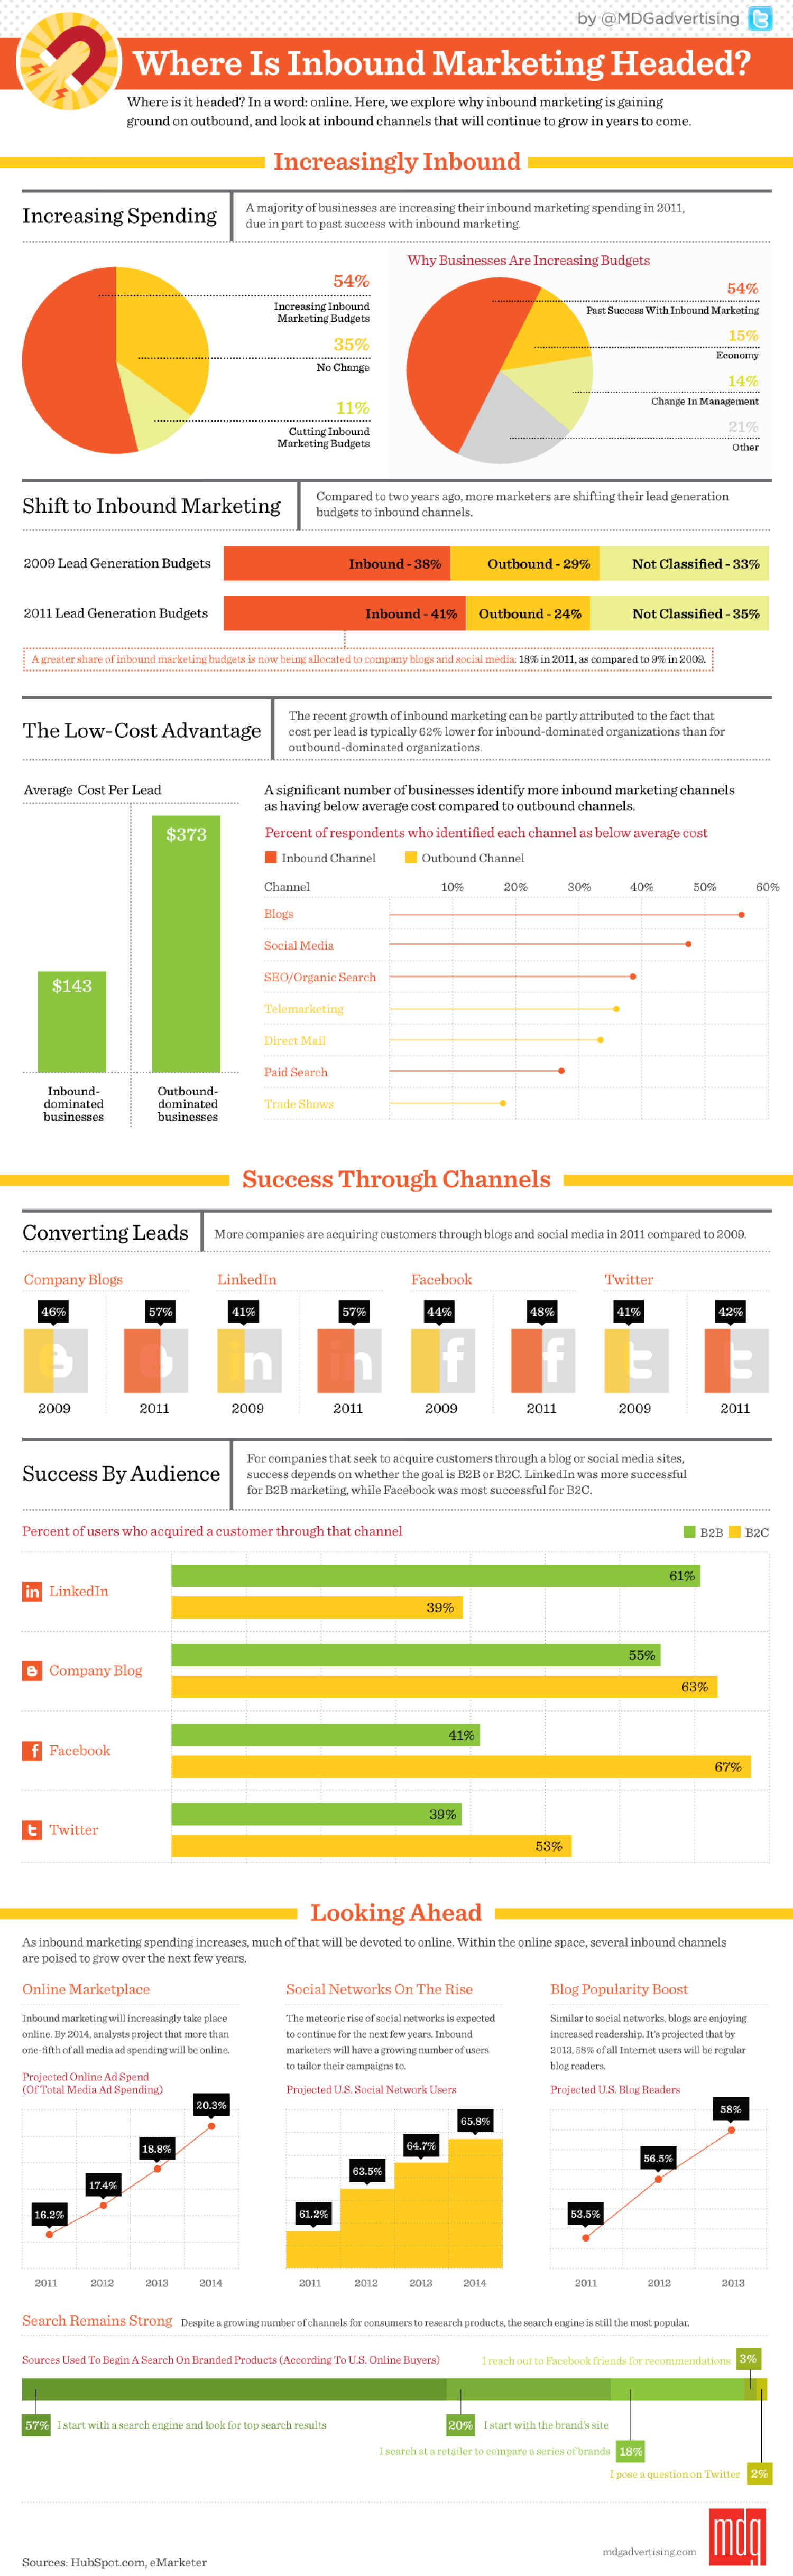 Where Is Inbound Marketing Headed? Infographic